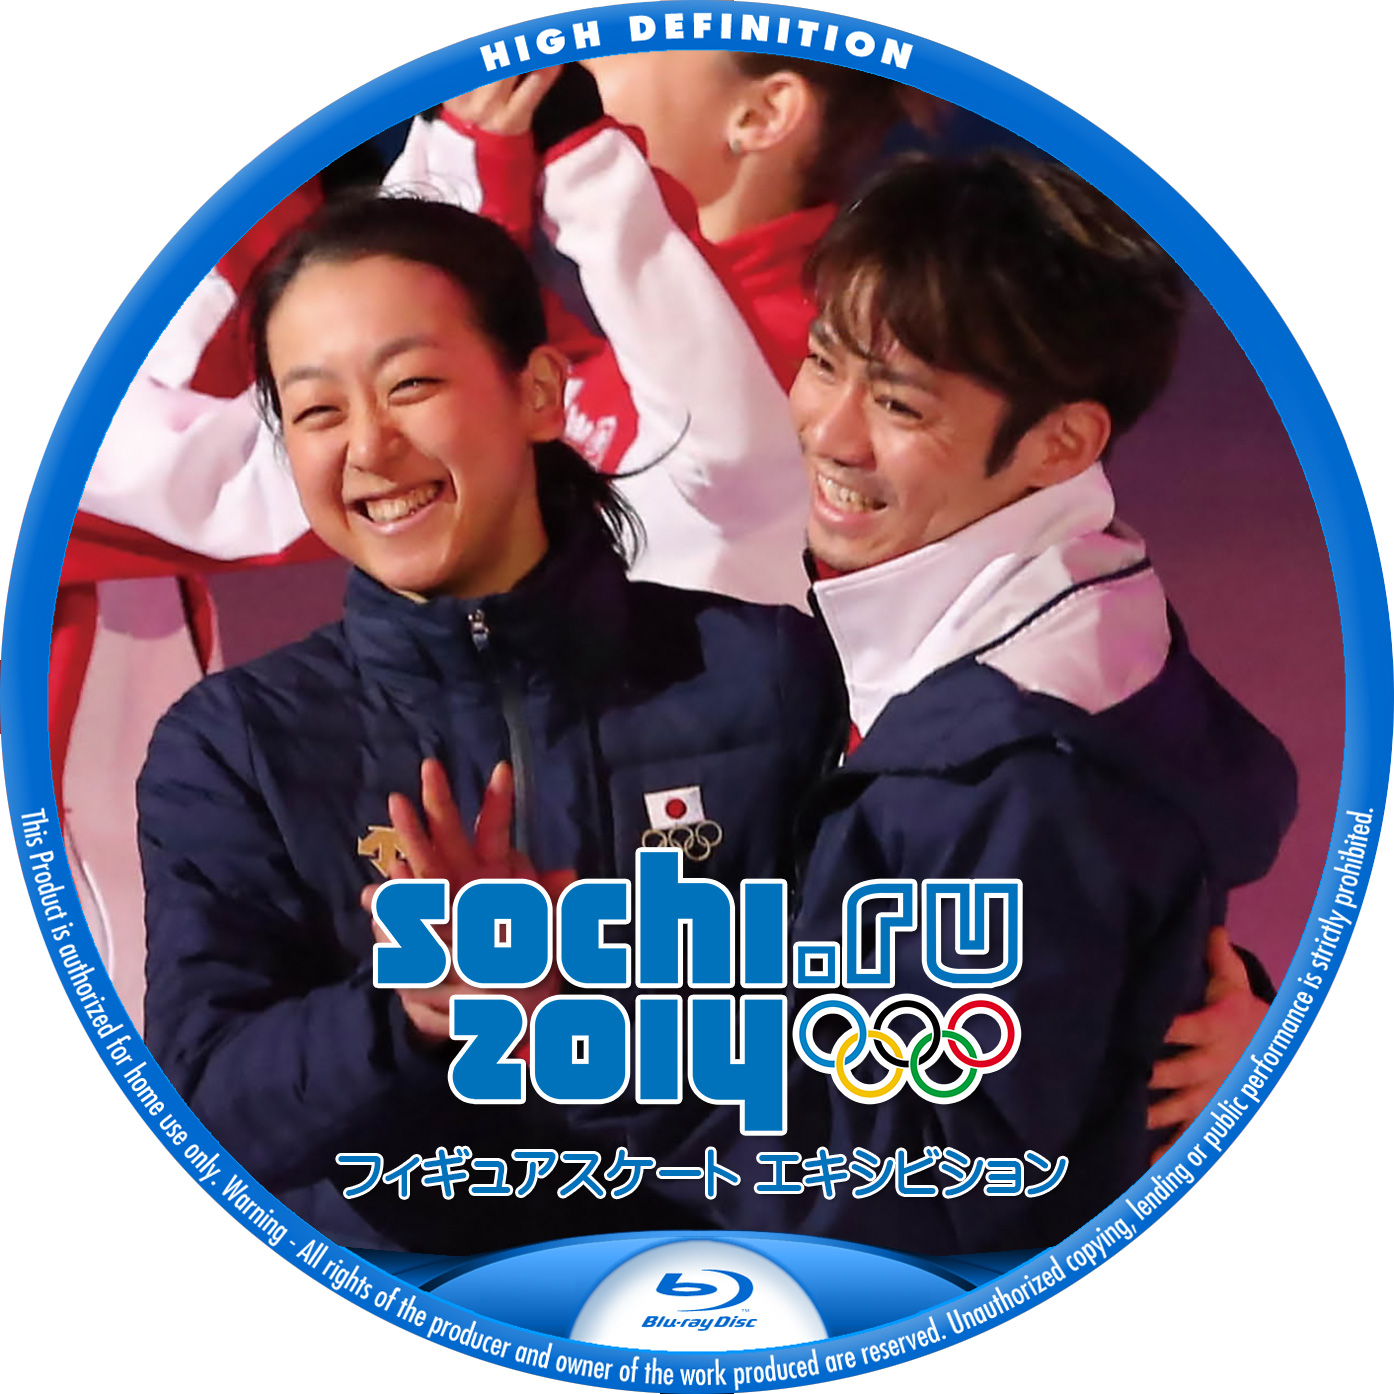 Sochi_Figure_Exhibition-BD3